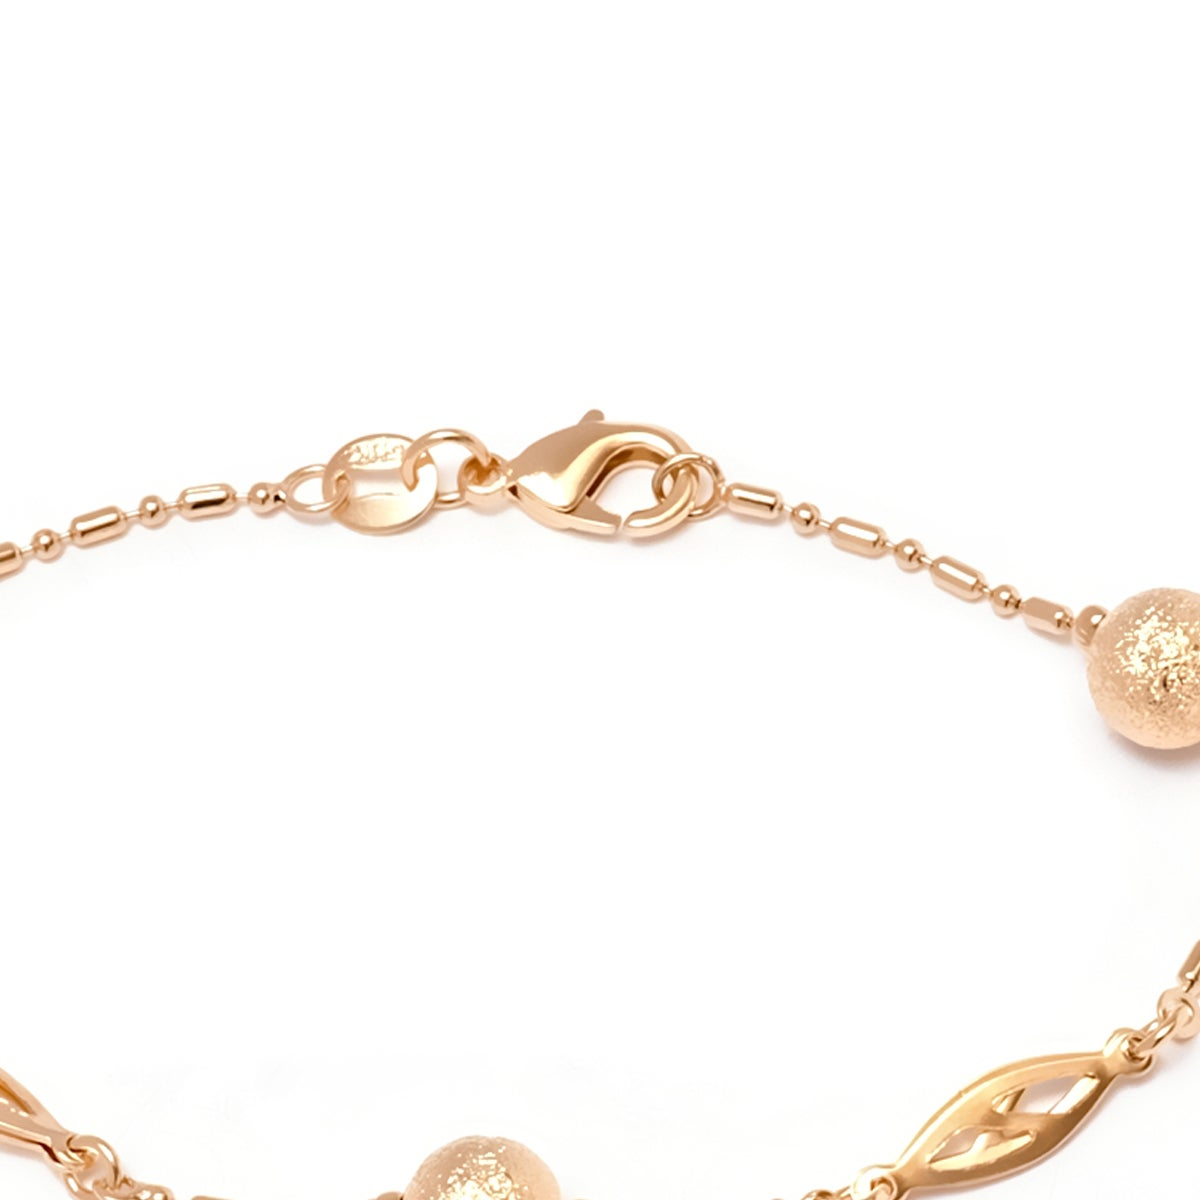 c88dd702dfefcf Shop Gold-plated Diamond-crushed Ball Bead Bracelet - Gold - Free Shipping  On Orders Over $45 - Overstock - 12555292